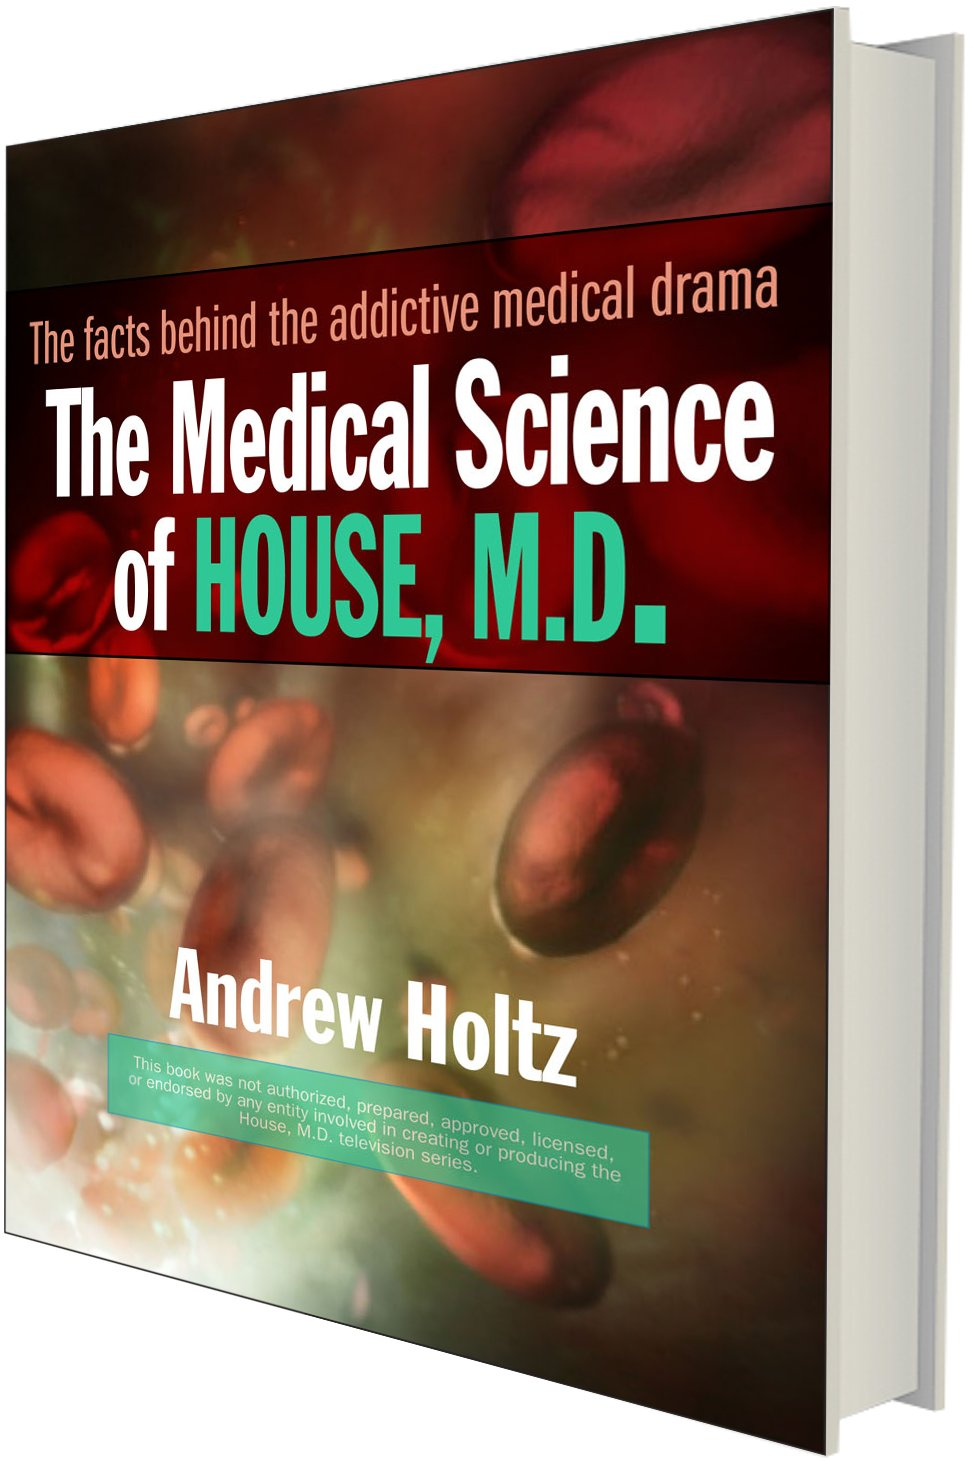 The Medical Science of House, M.D. book cover